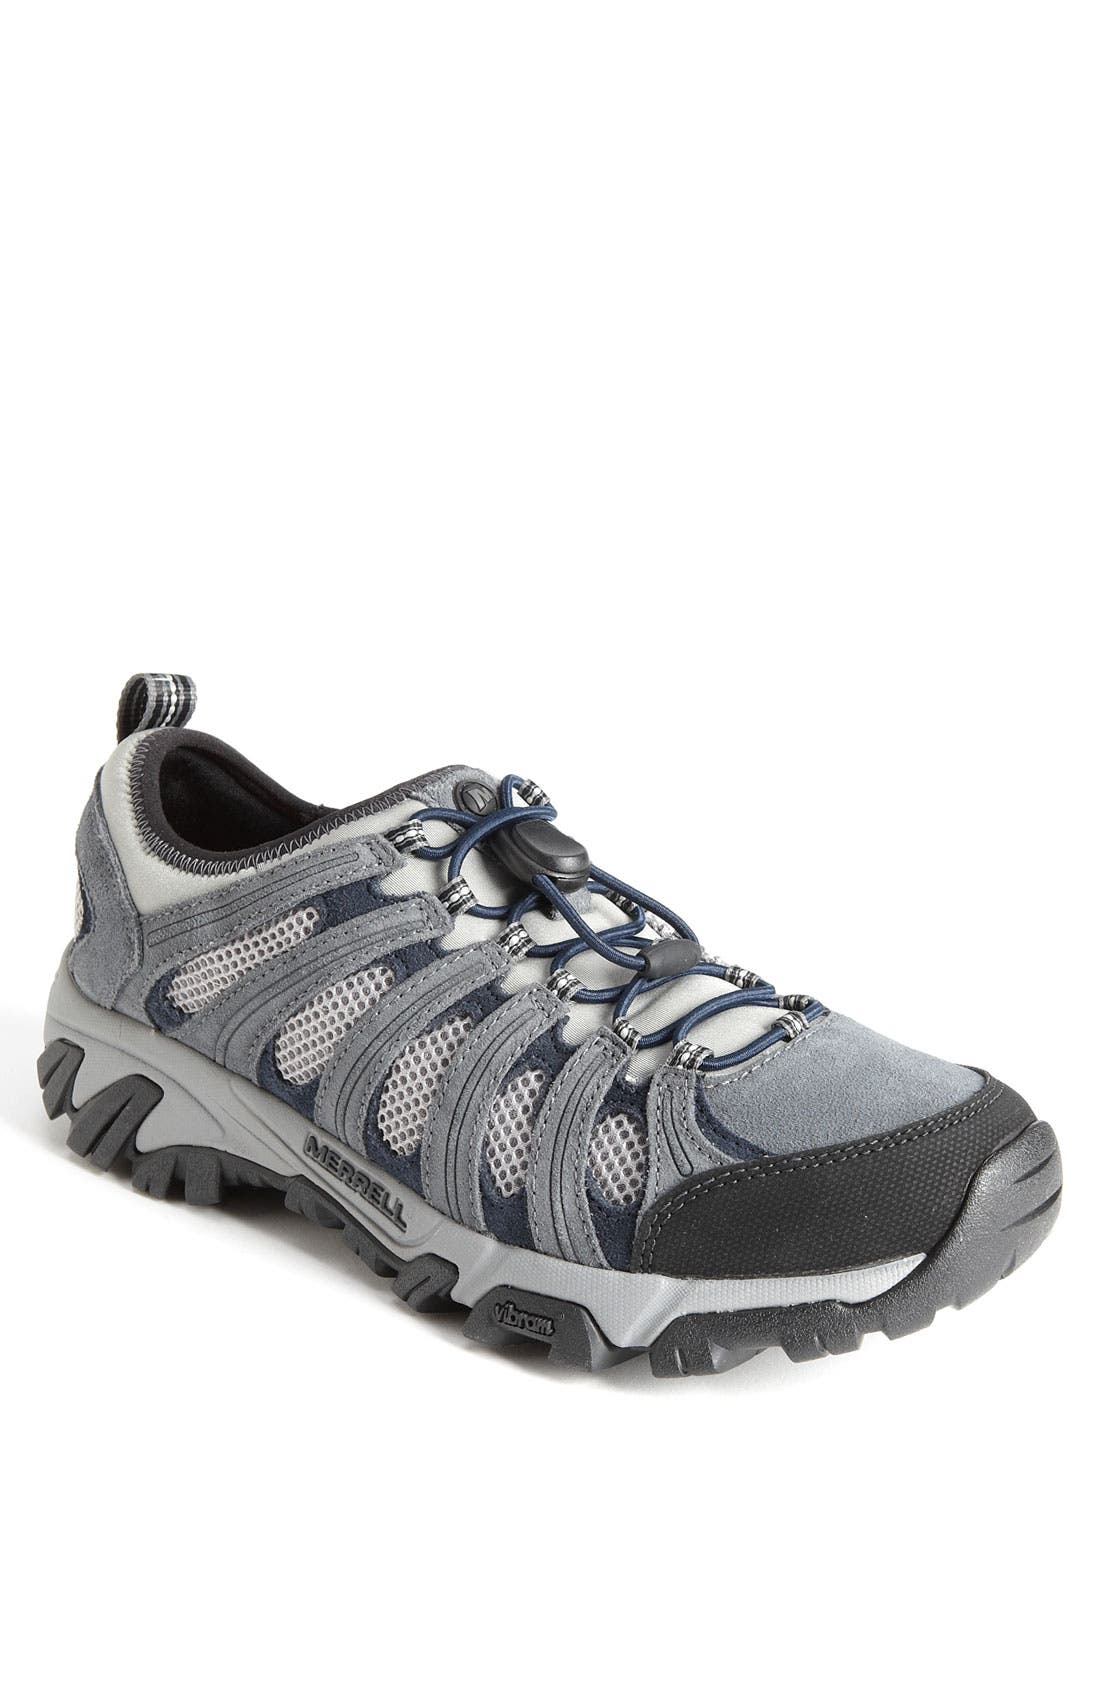 Main Image - Merrell 'Geomorph Maze Stretch' Hiking Shoe (Men)